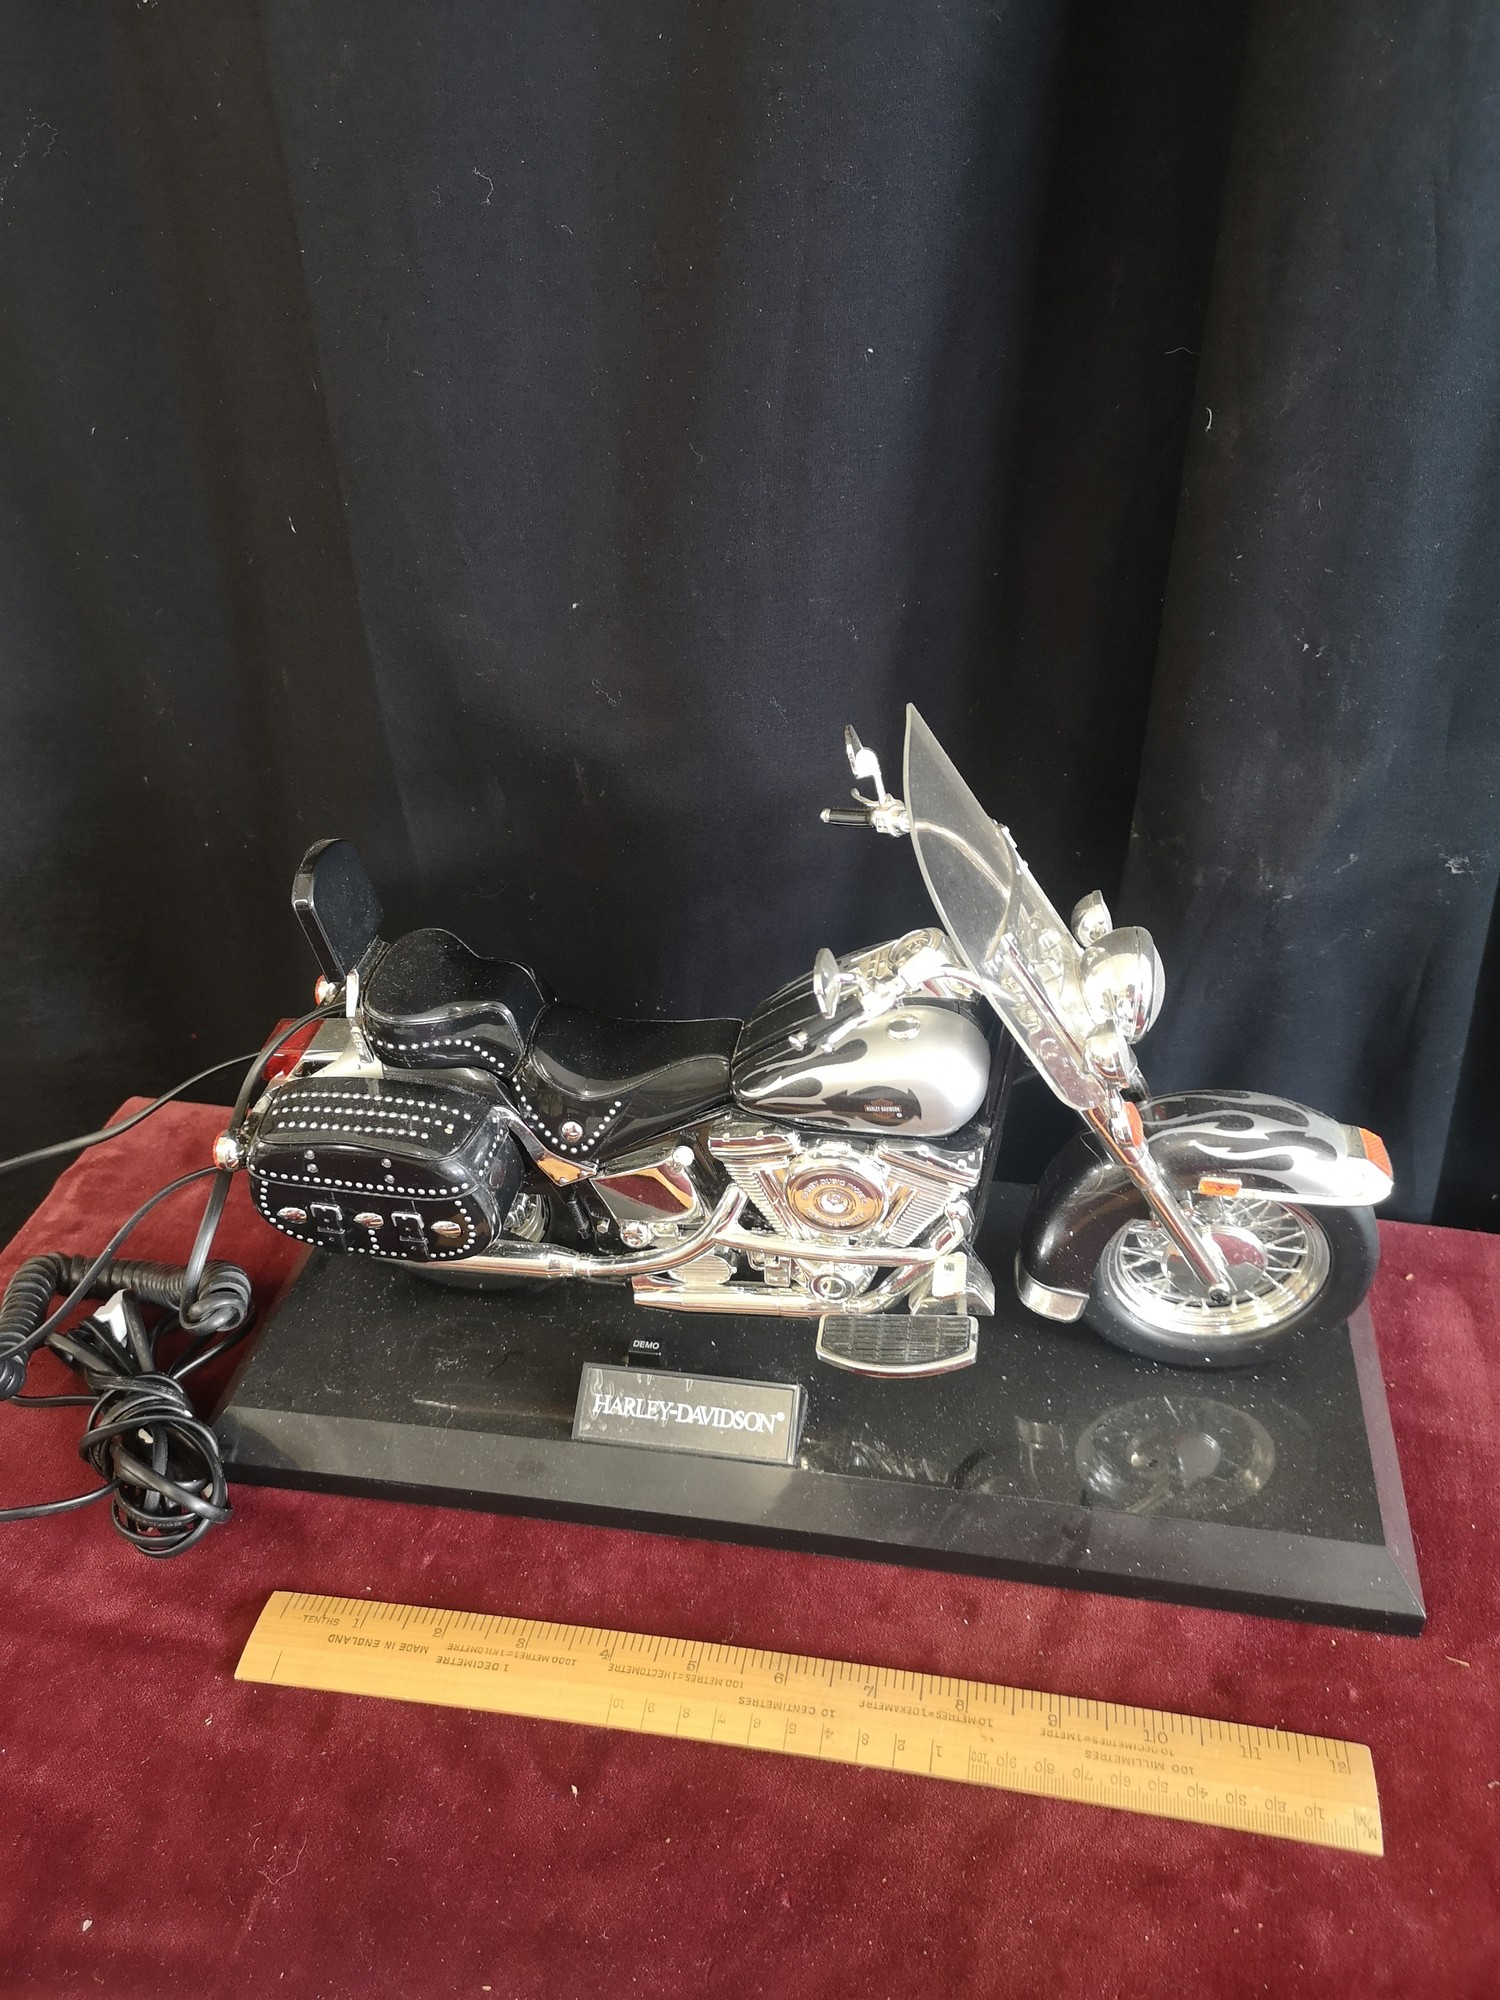 Hartley Davidson motorcycle telephone. 13 inches in length.